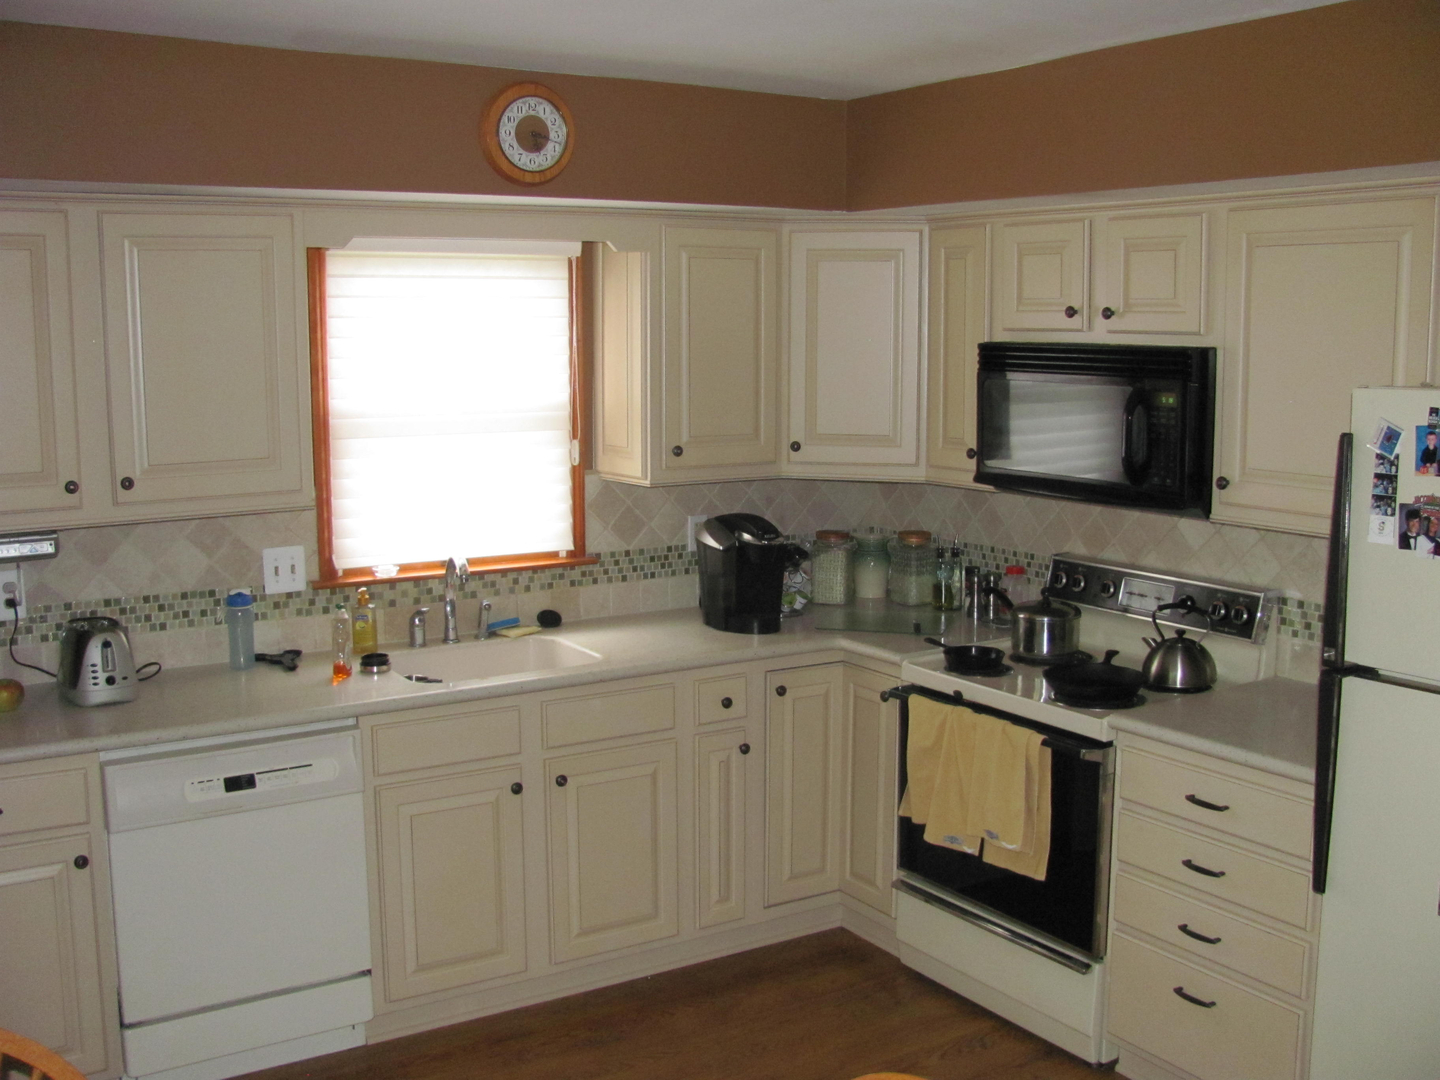 by keeping the solid frames of the old cabinets and refacing the end result is a high quality kitchen that saves you thousands over the cost of new - Kitchen Cabinets Frames